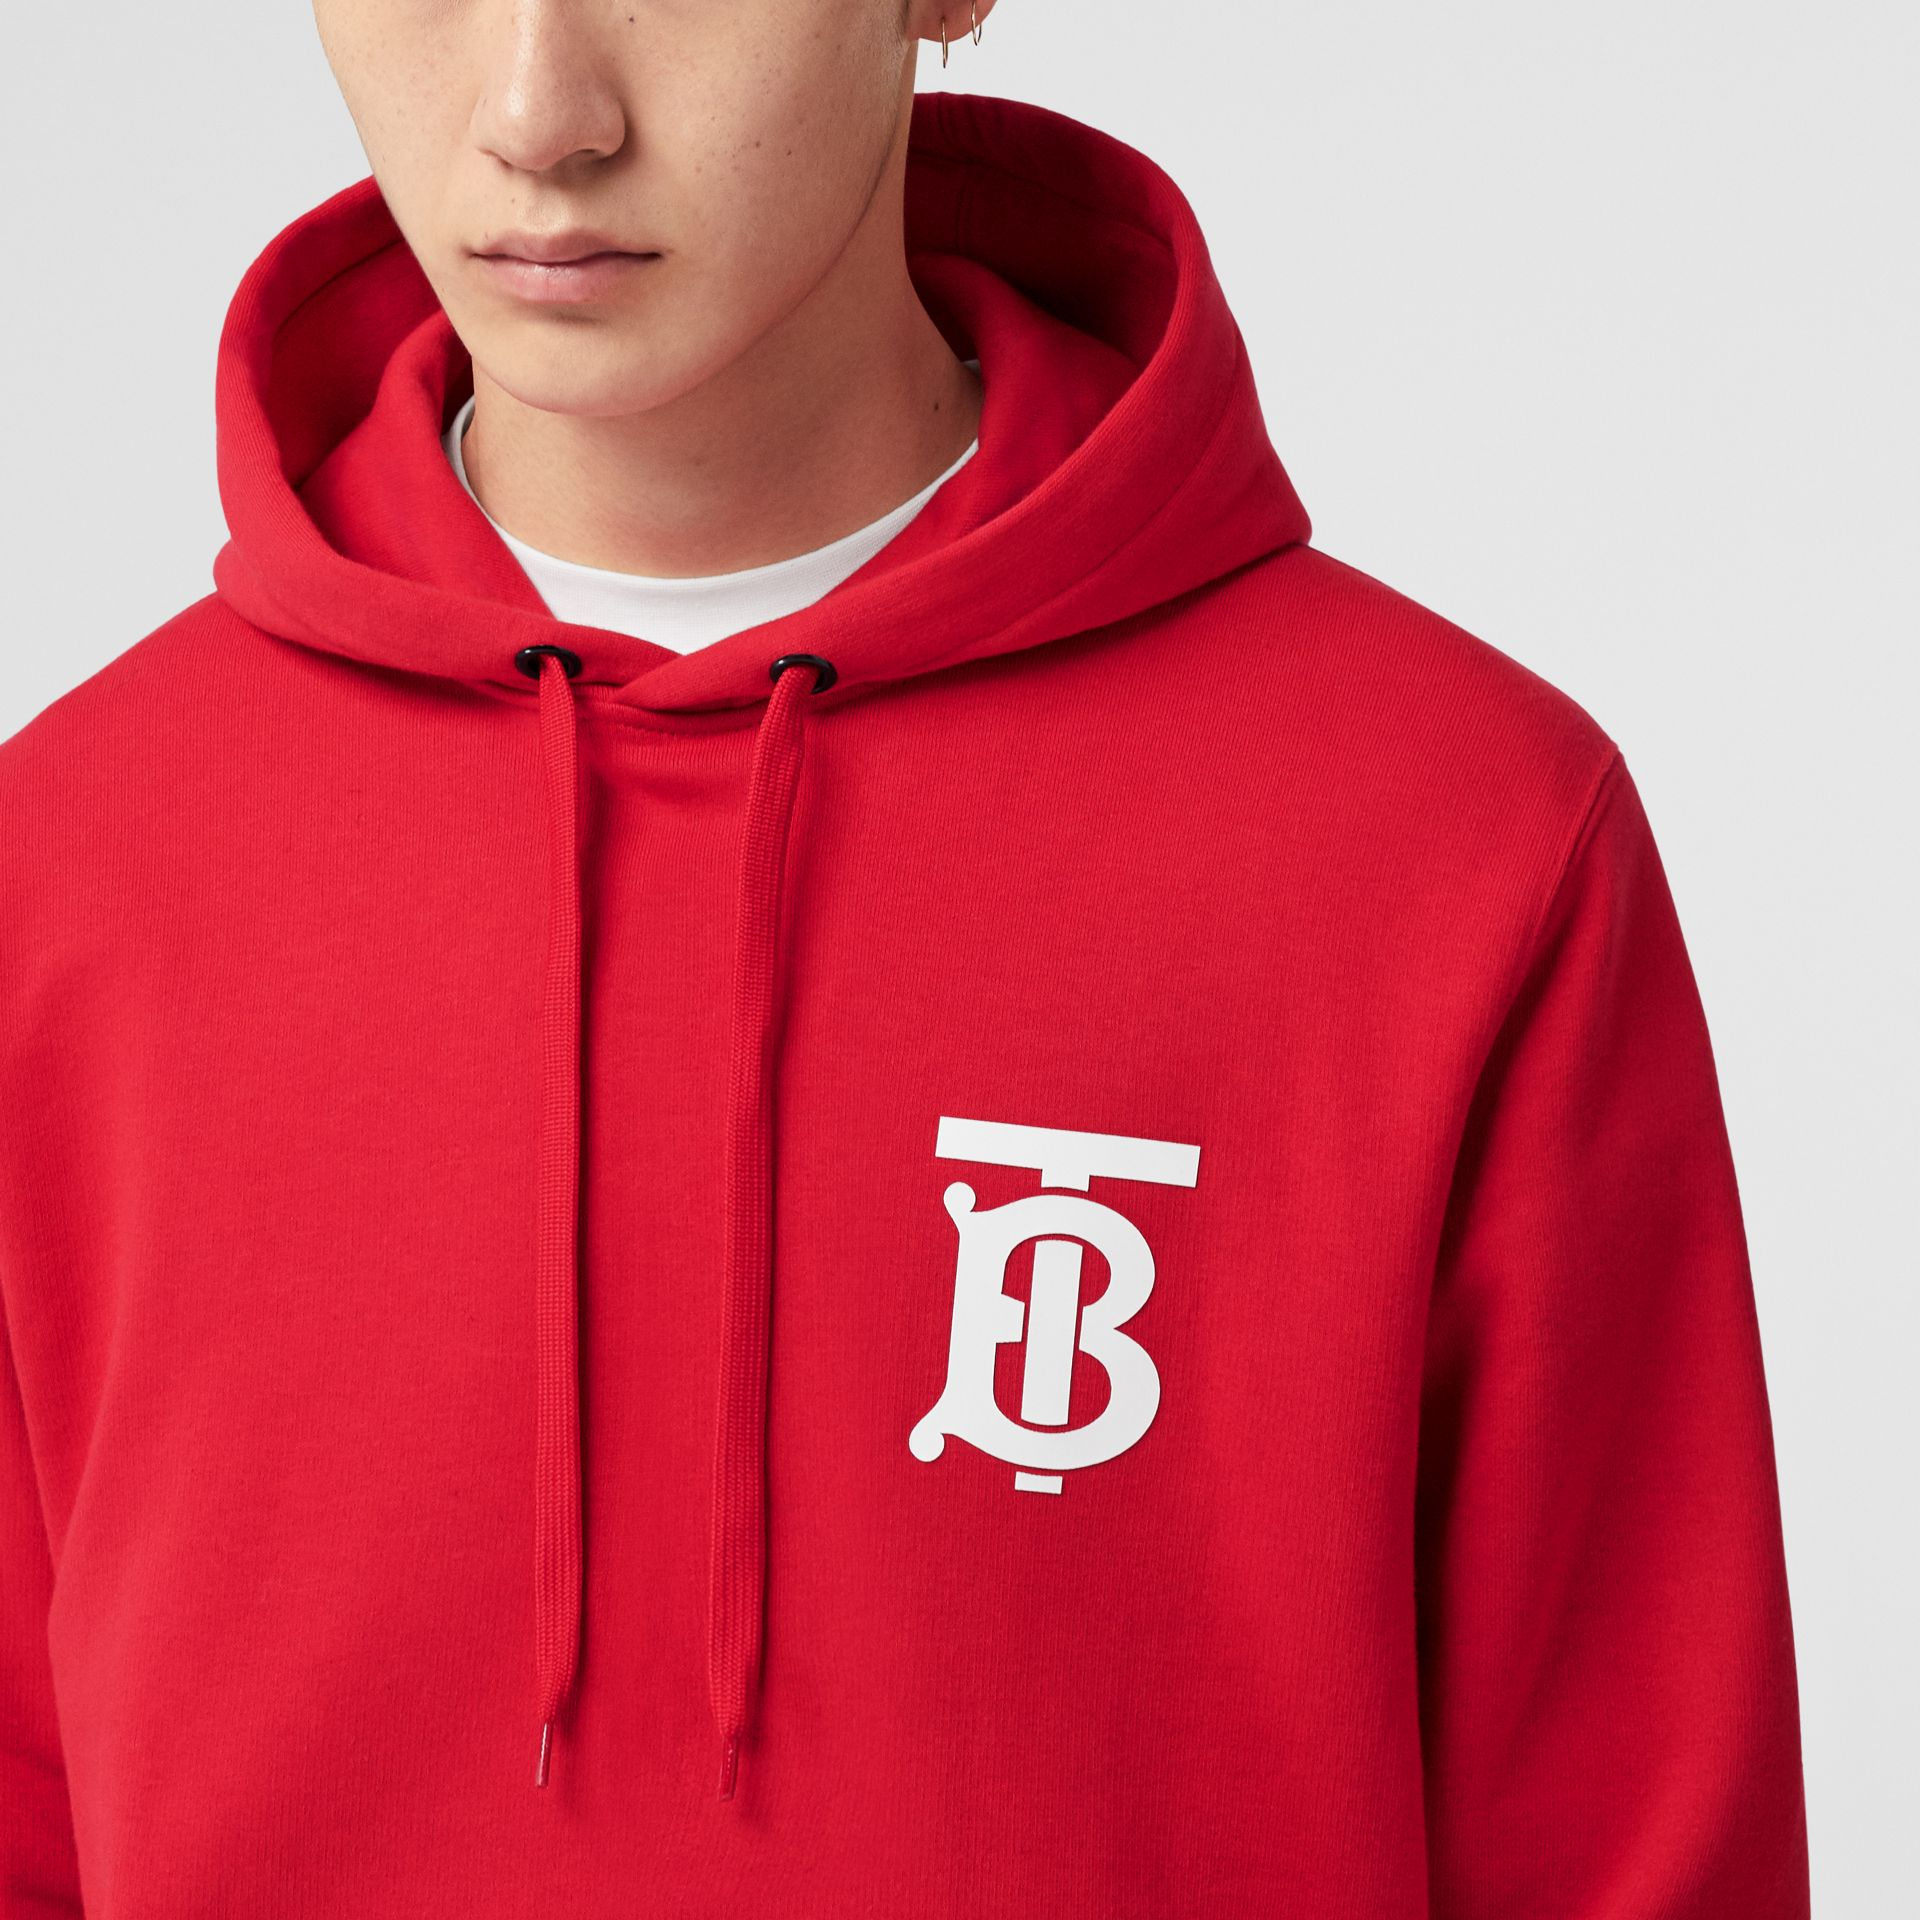 Monogram Motif Cotton Hoodie in Bright Red - Men | Burberry - gallery image 1